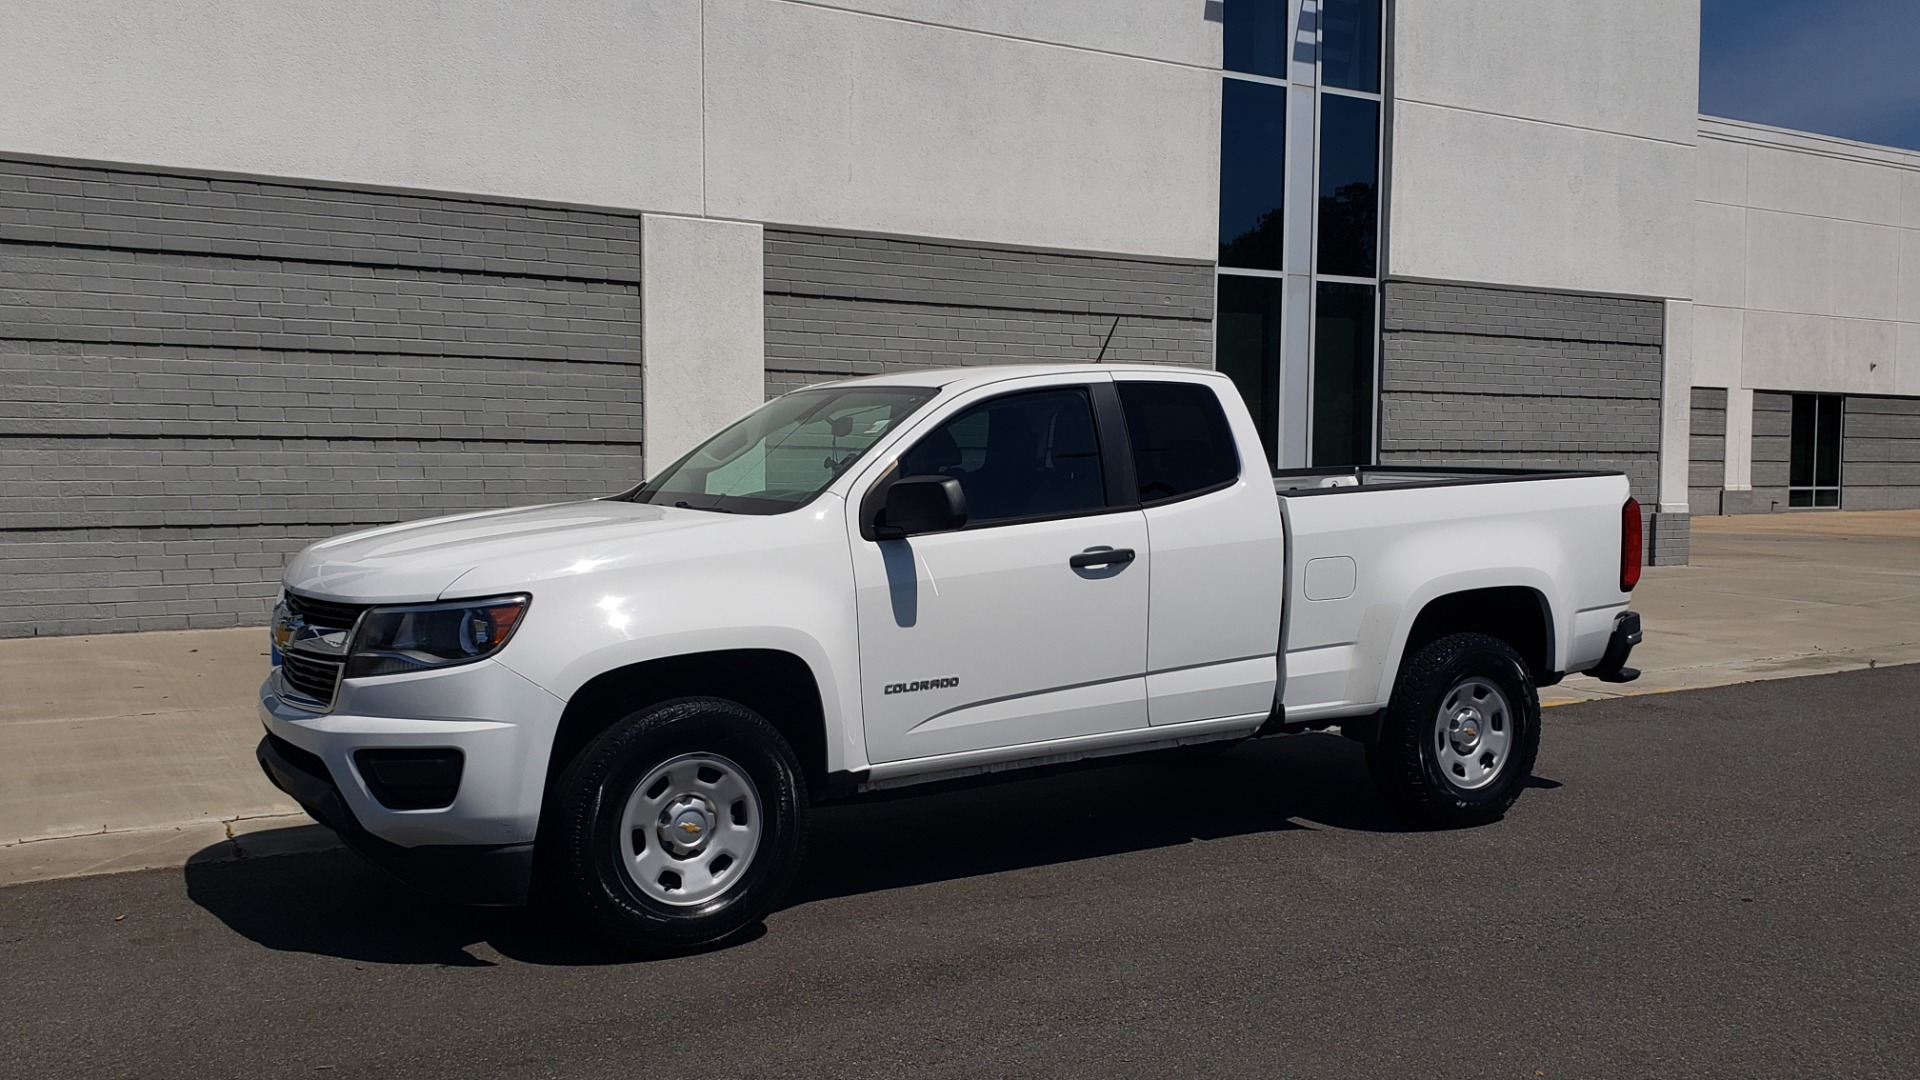 Used 2016 Chevrolet COLORADO 2WD WT / EXT CAB / 128.3 WB / 4-CYL / 6-SPD AUTO / REARVIEW for sale Sold at Formula Imports in Charlotte NC 28227 3